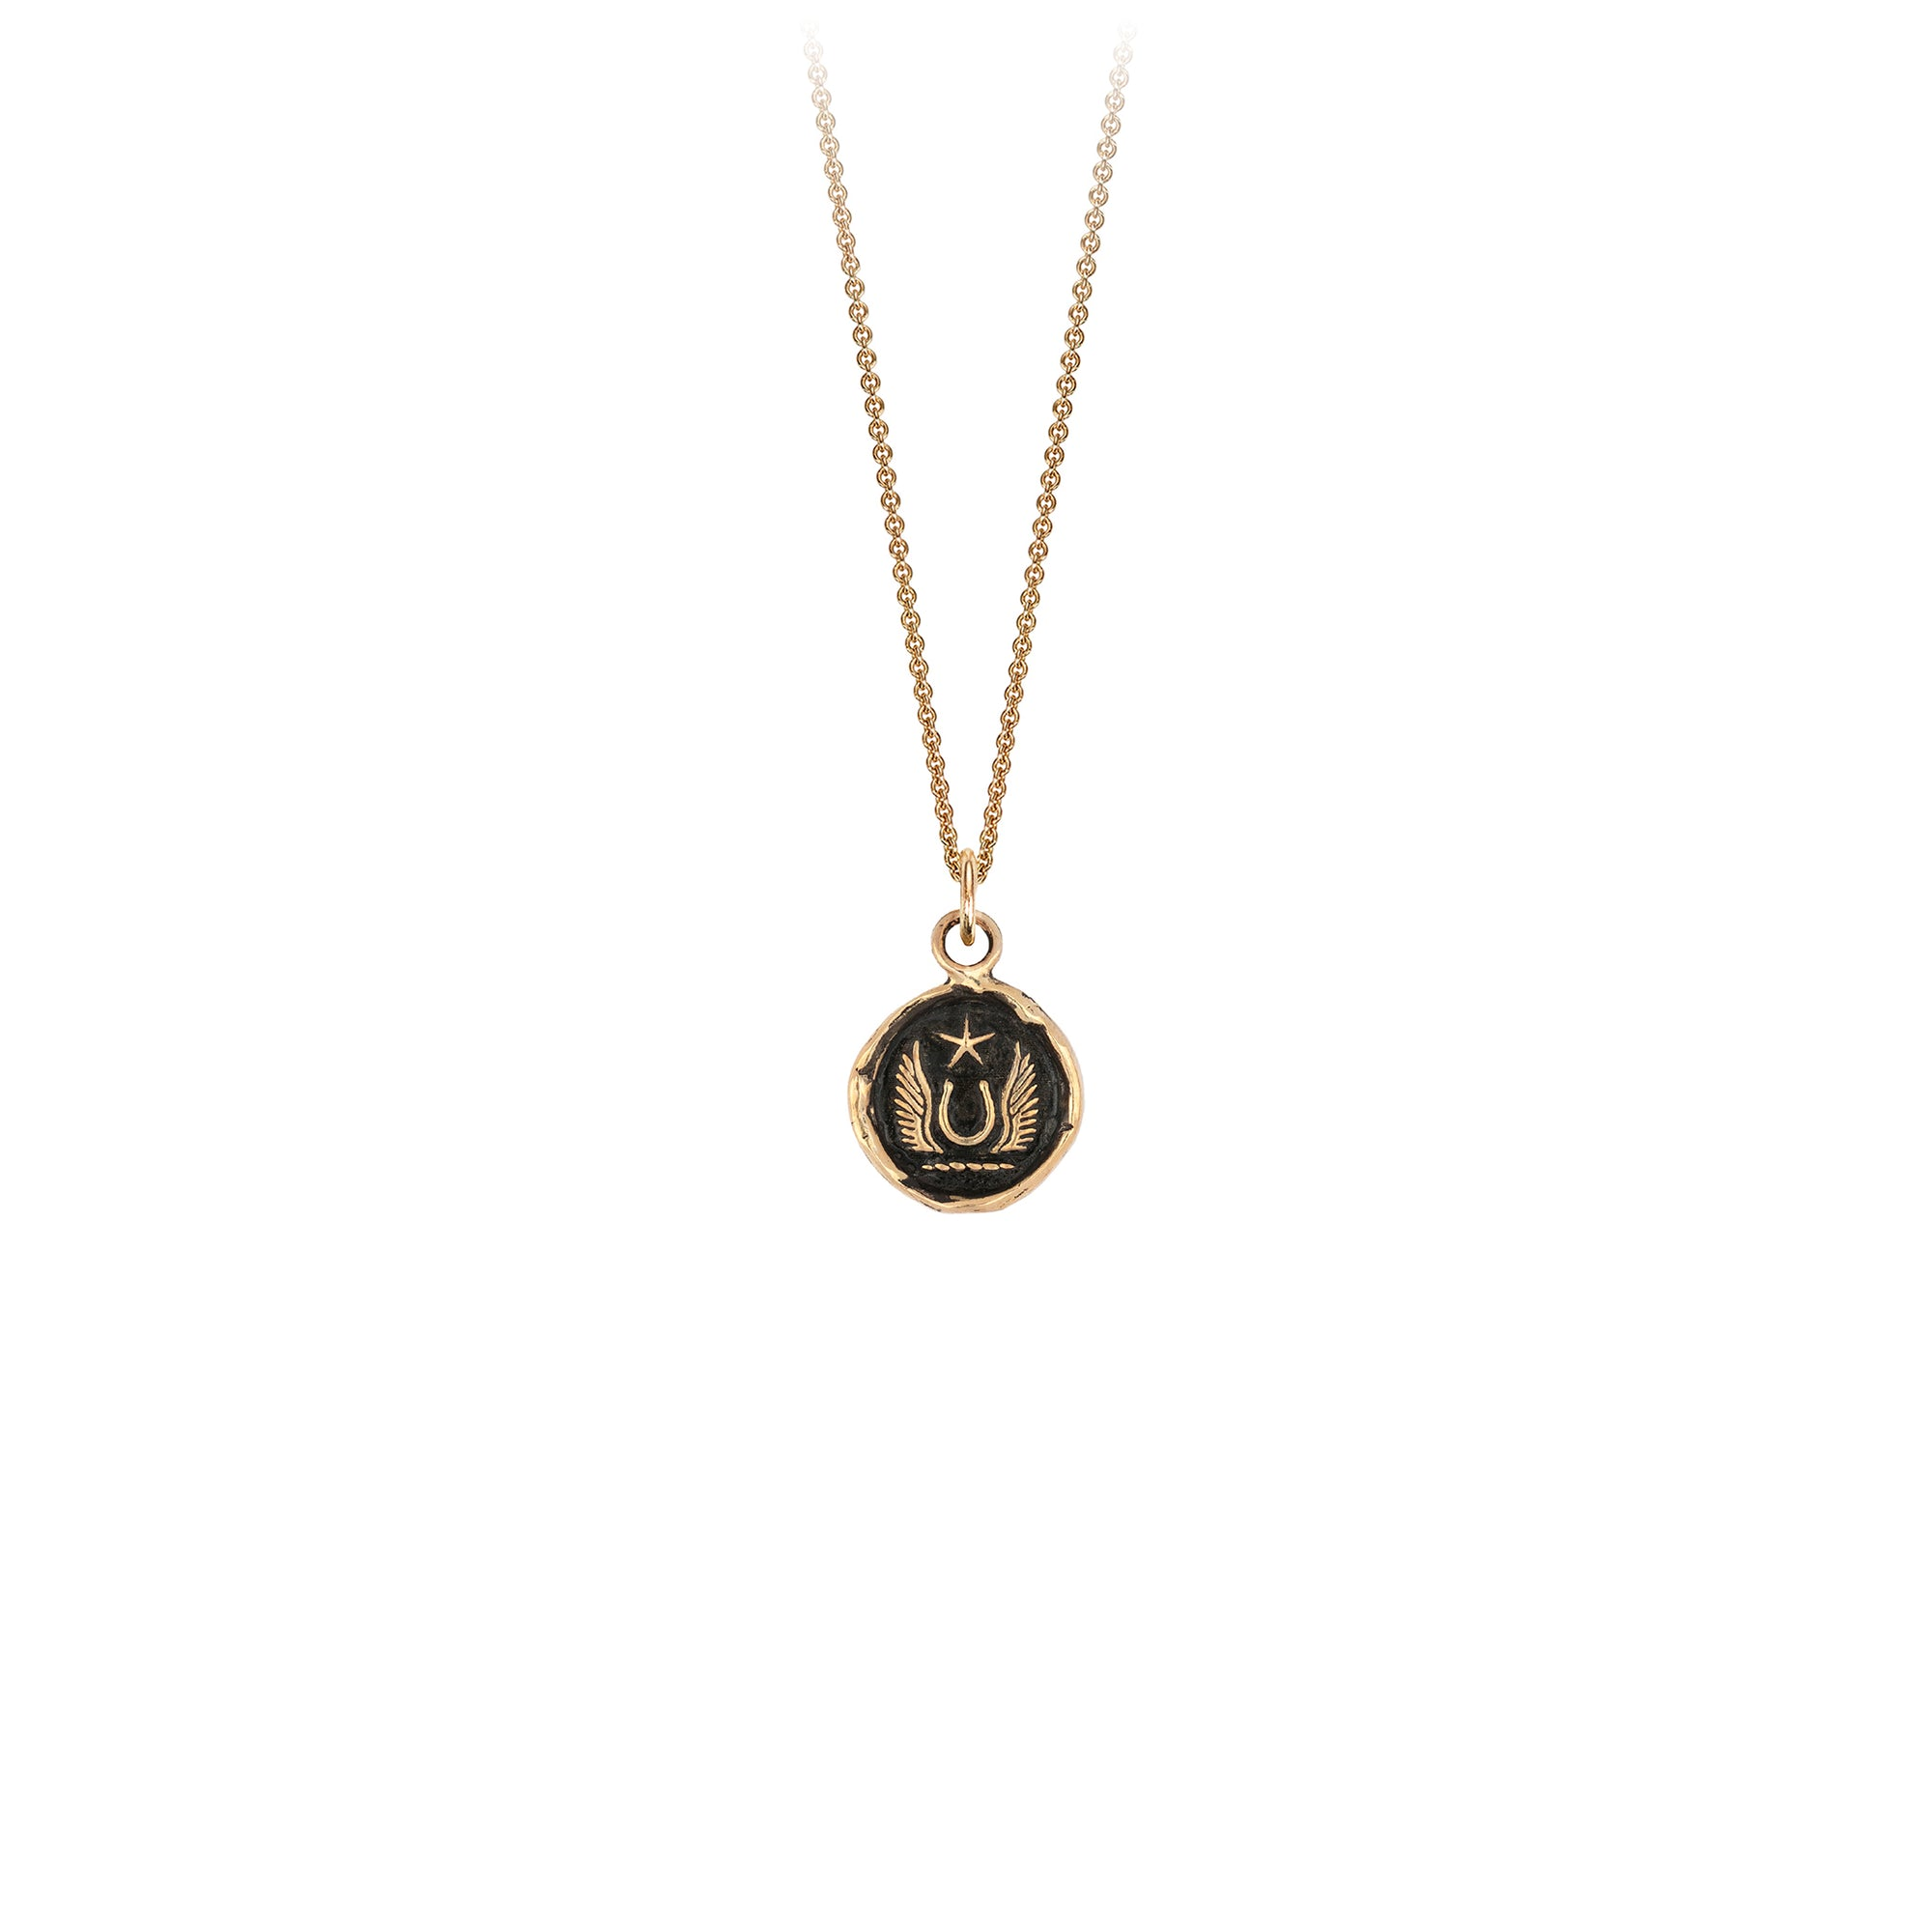 Pyrrha 14K Gold Luck and Protection Talisman Necklace